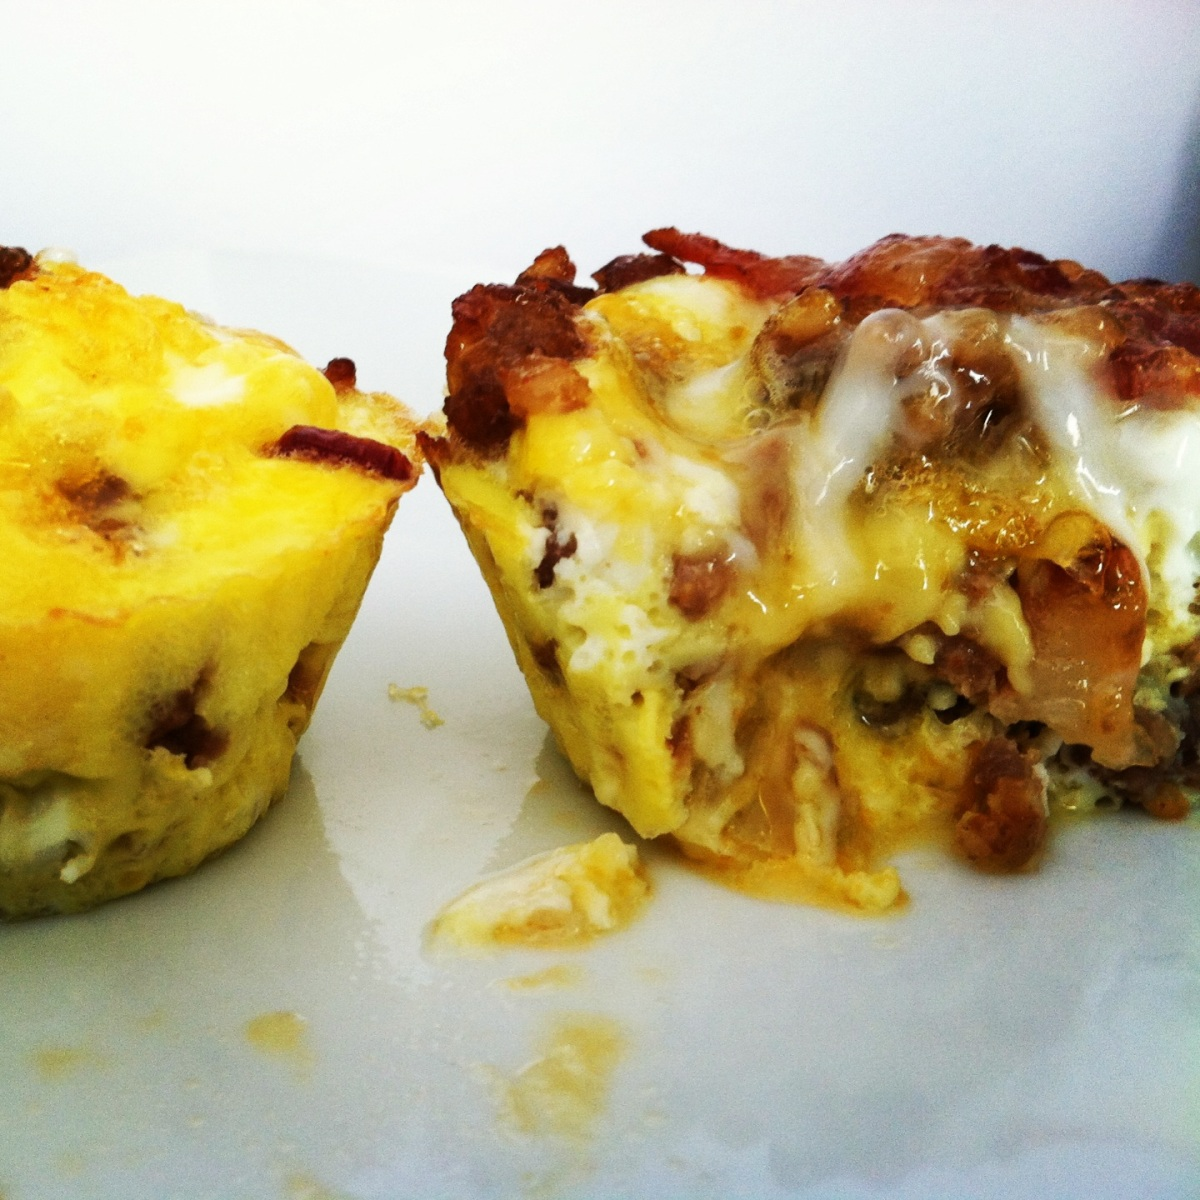 Bacon Sausage Egg Bites